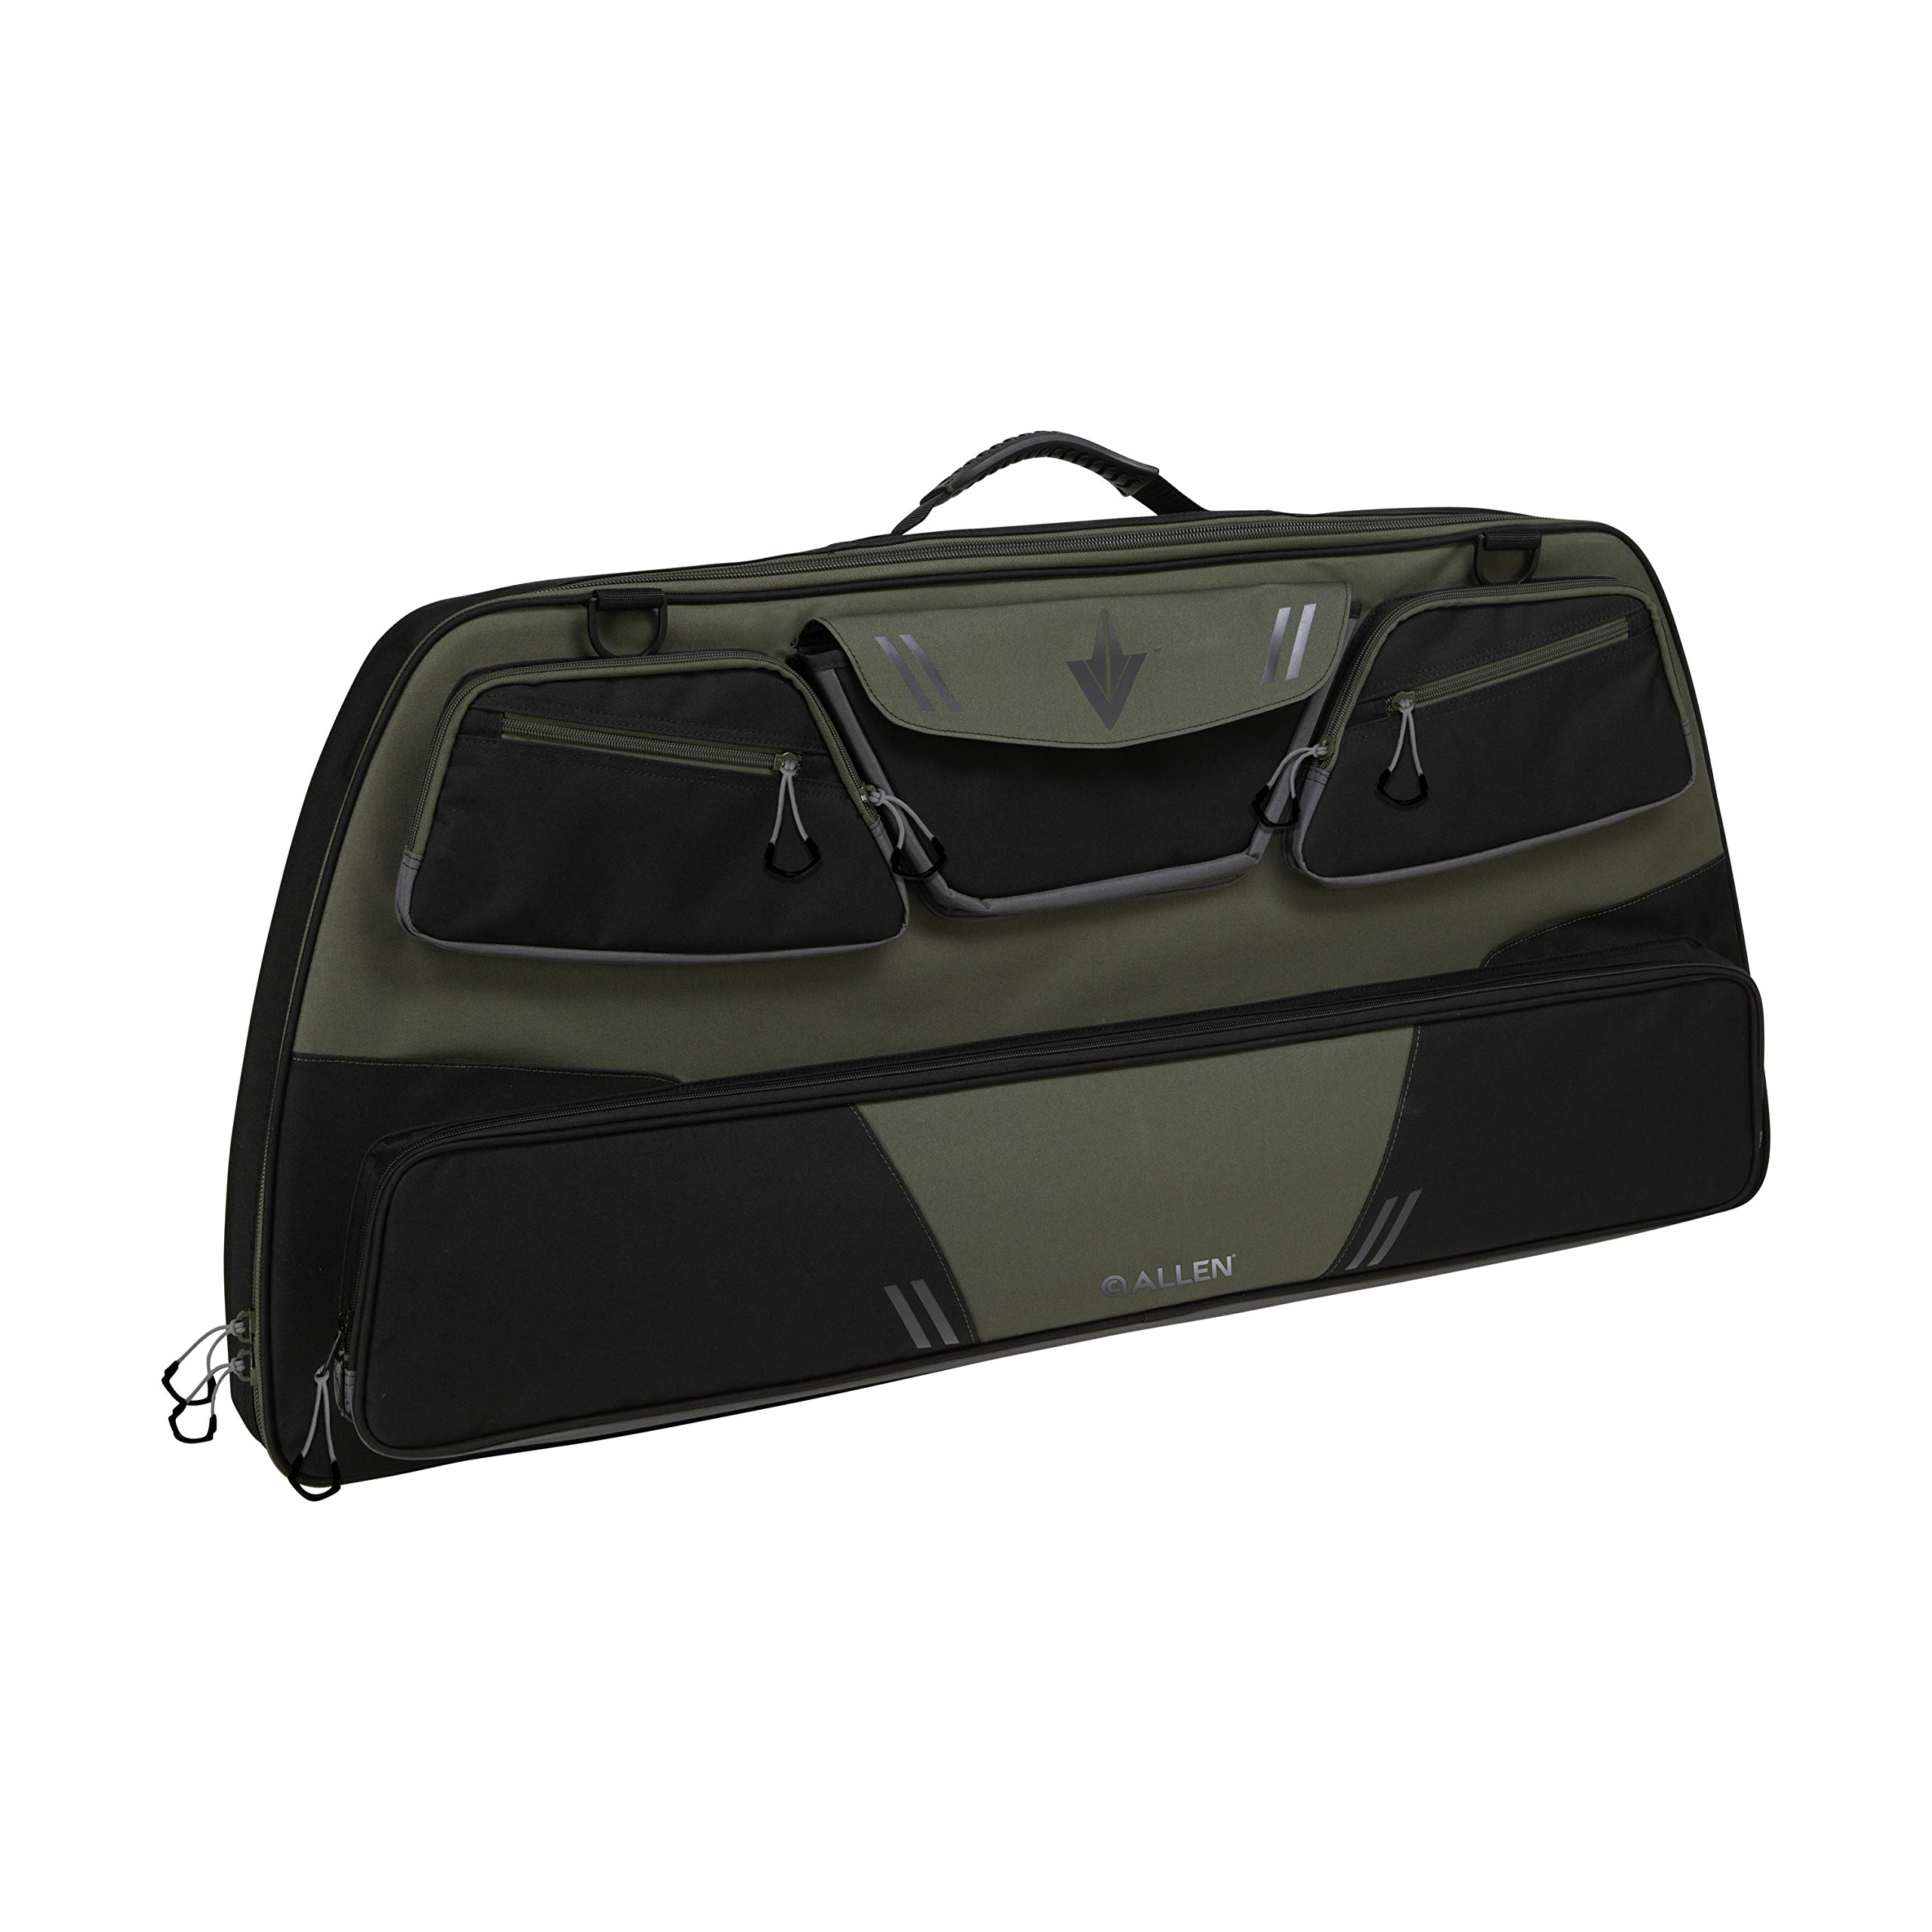 Aconite Compound Bow Case 41 inches - Green/Black by Allen Company